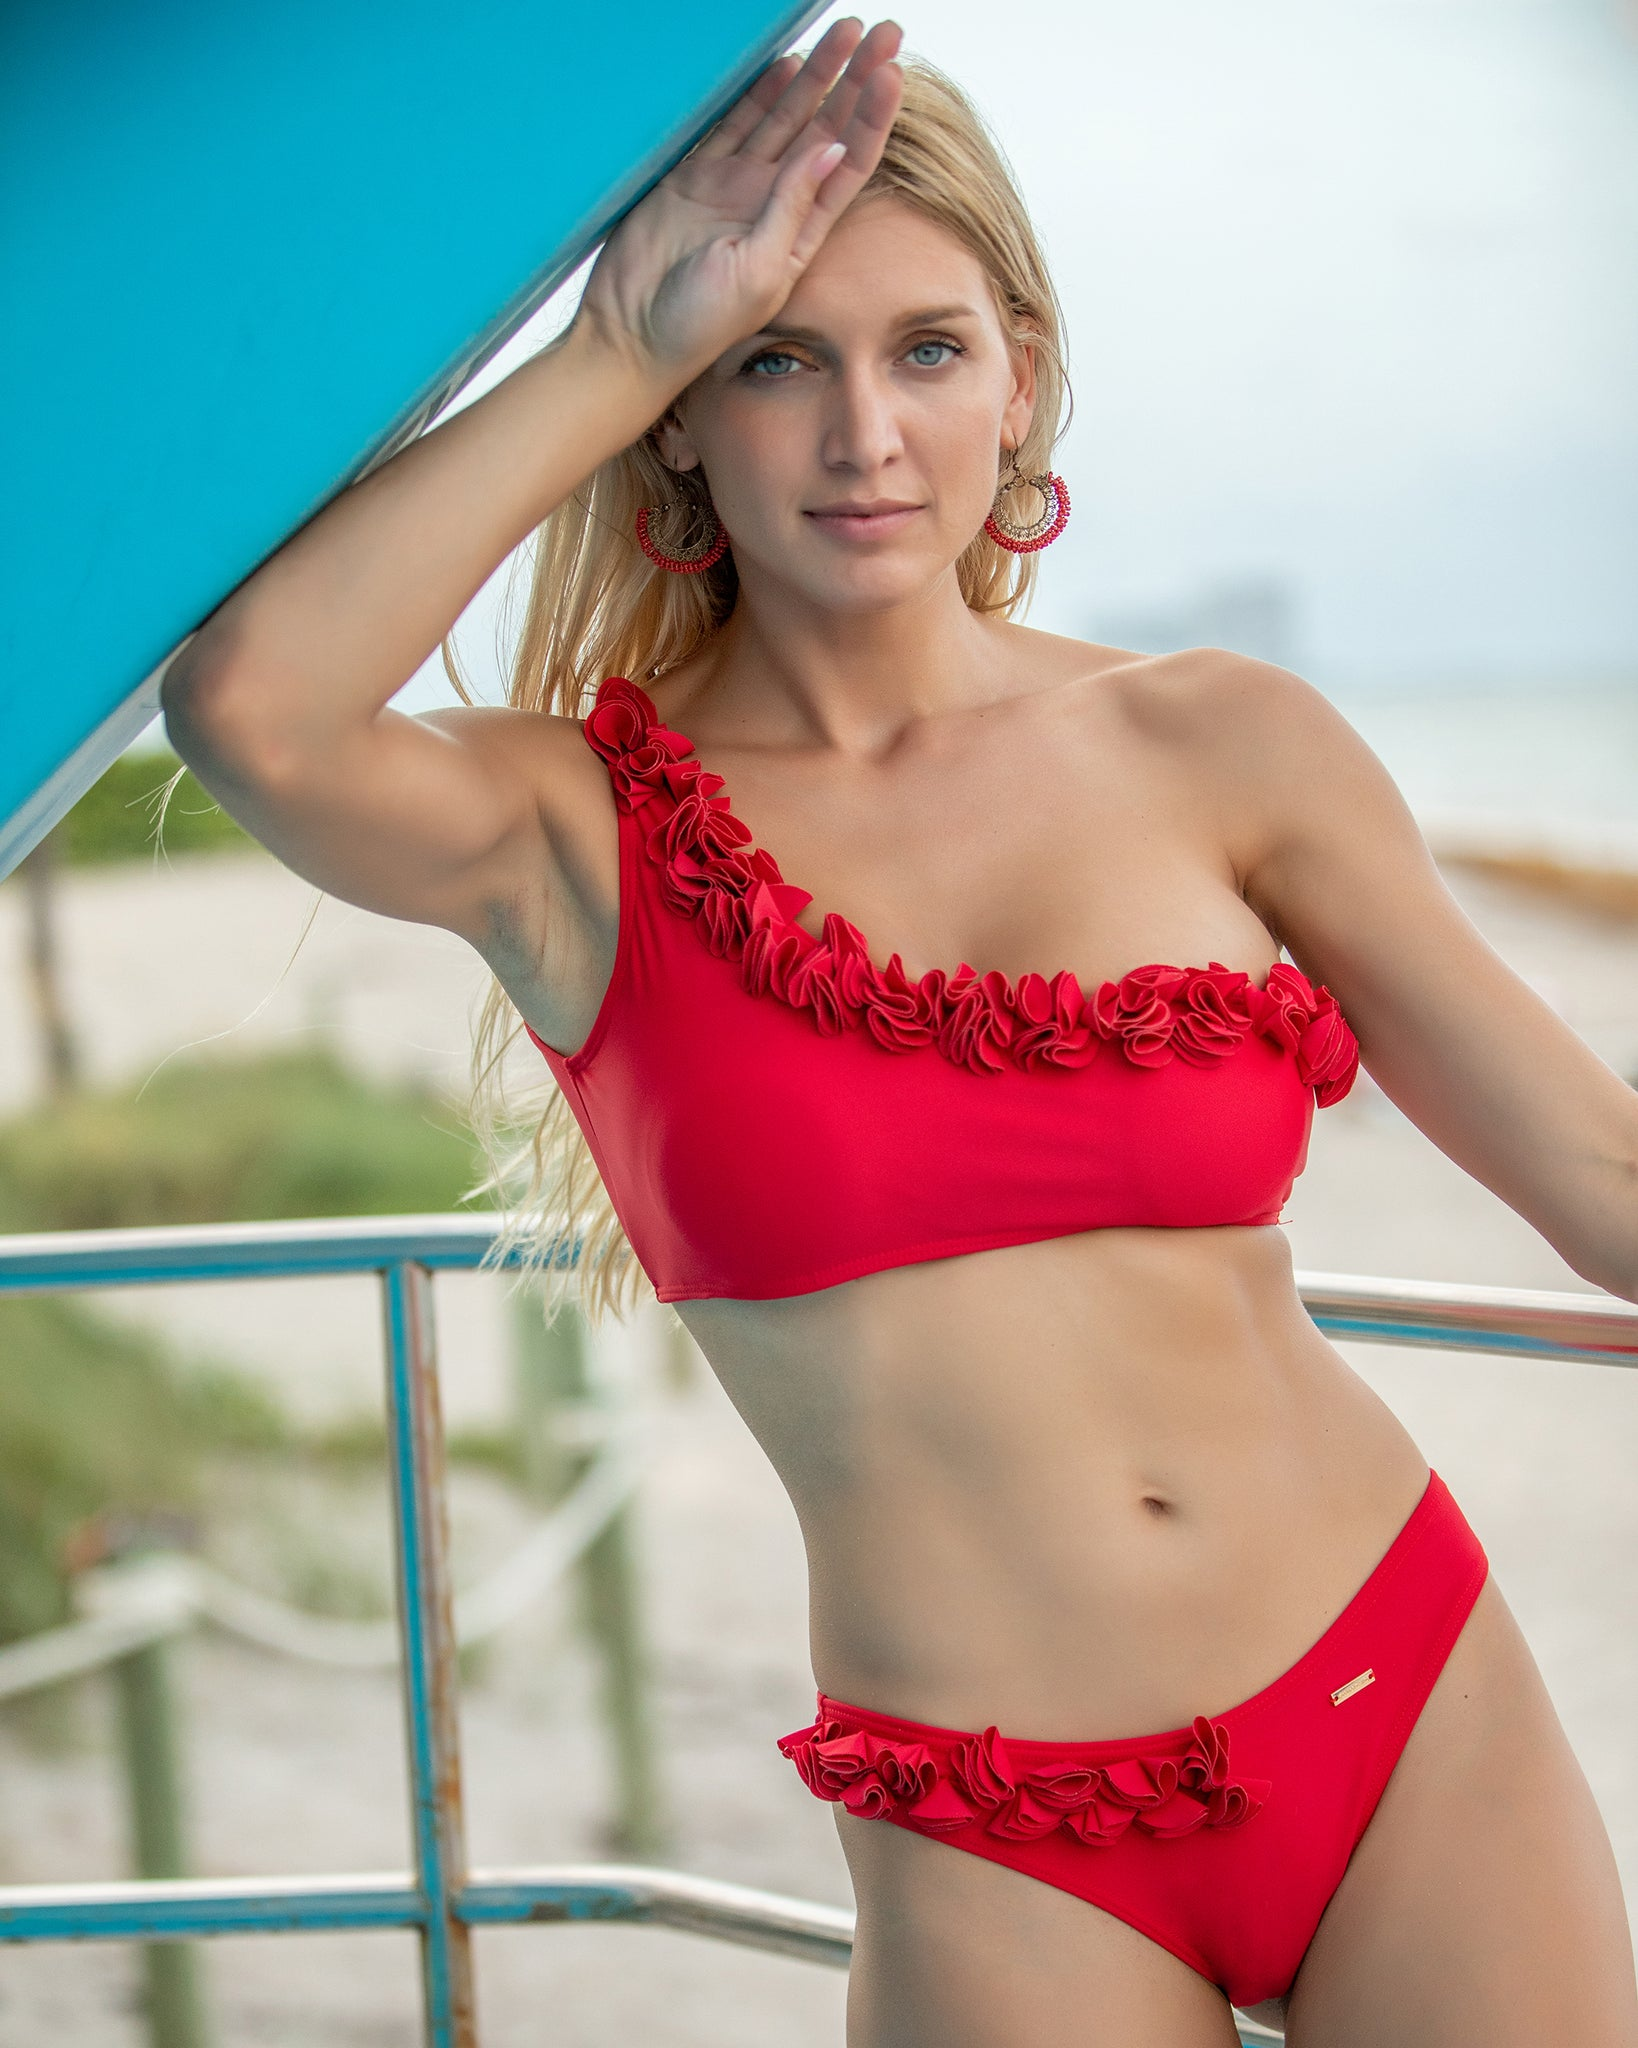 Solid Print Red Ruffled One Shoulder Bikini w/Flower Detail